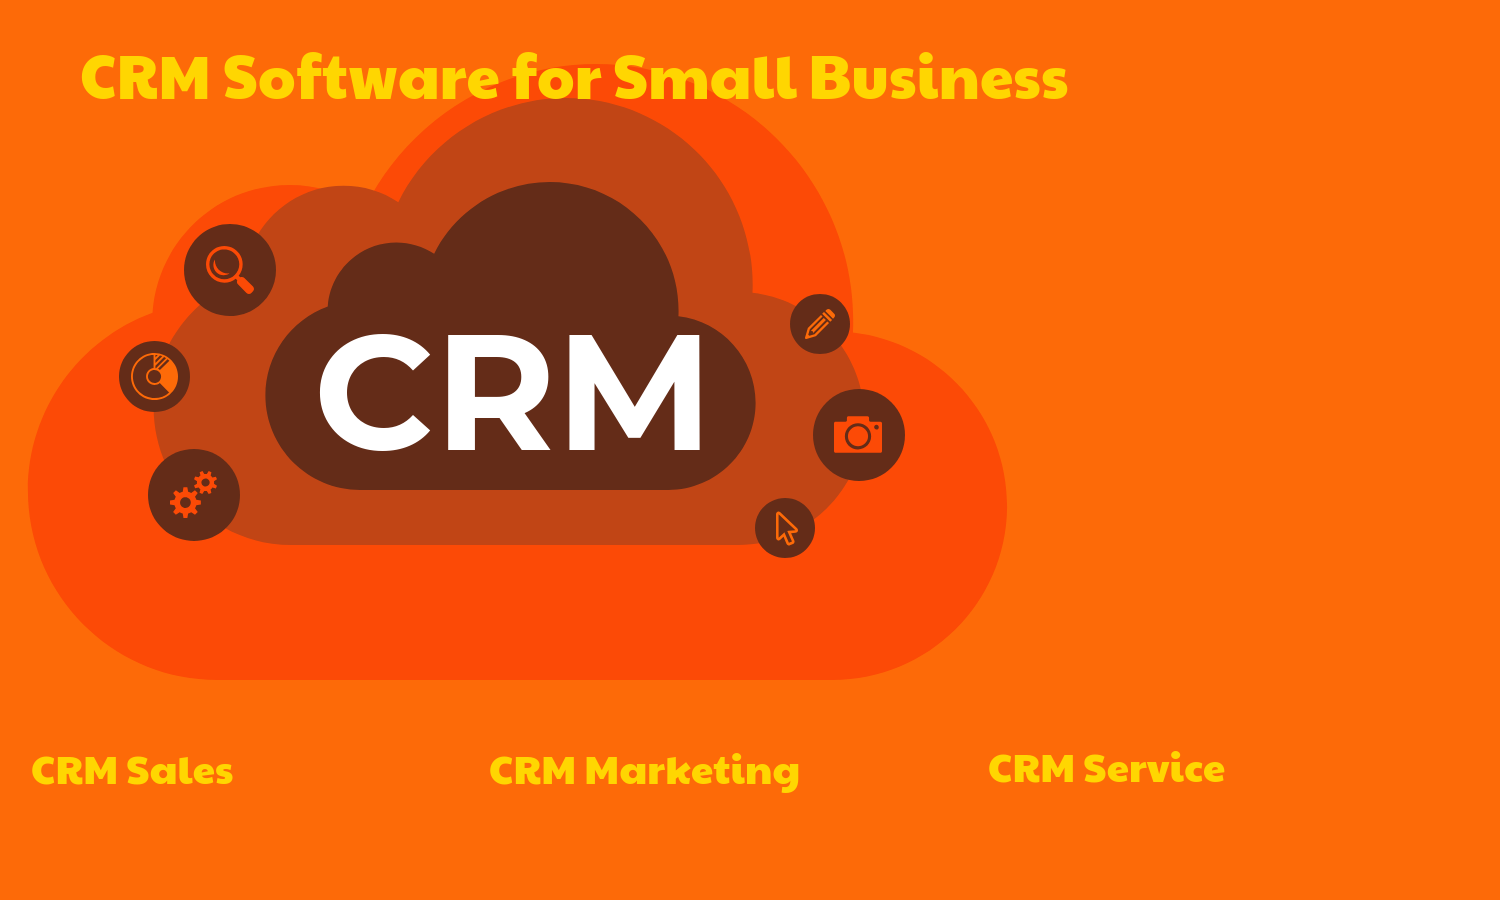 Top 24 Crm Software For Small Business In 2021 Reviews Features Pricing Comparison Pat Research B2b Reviews Buying Guides Best Practices Small Business Software Crm Crm Software